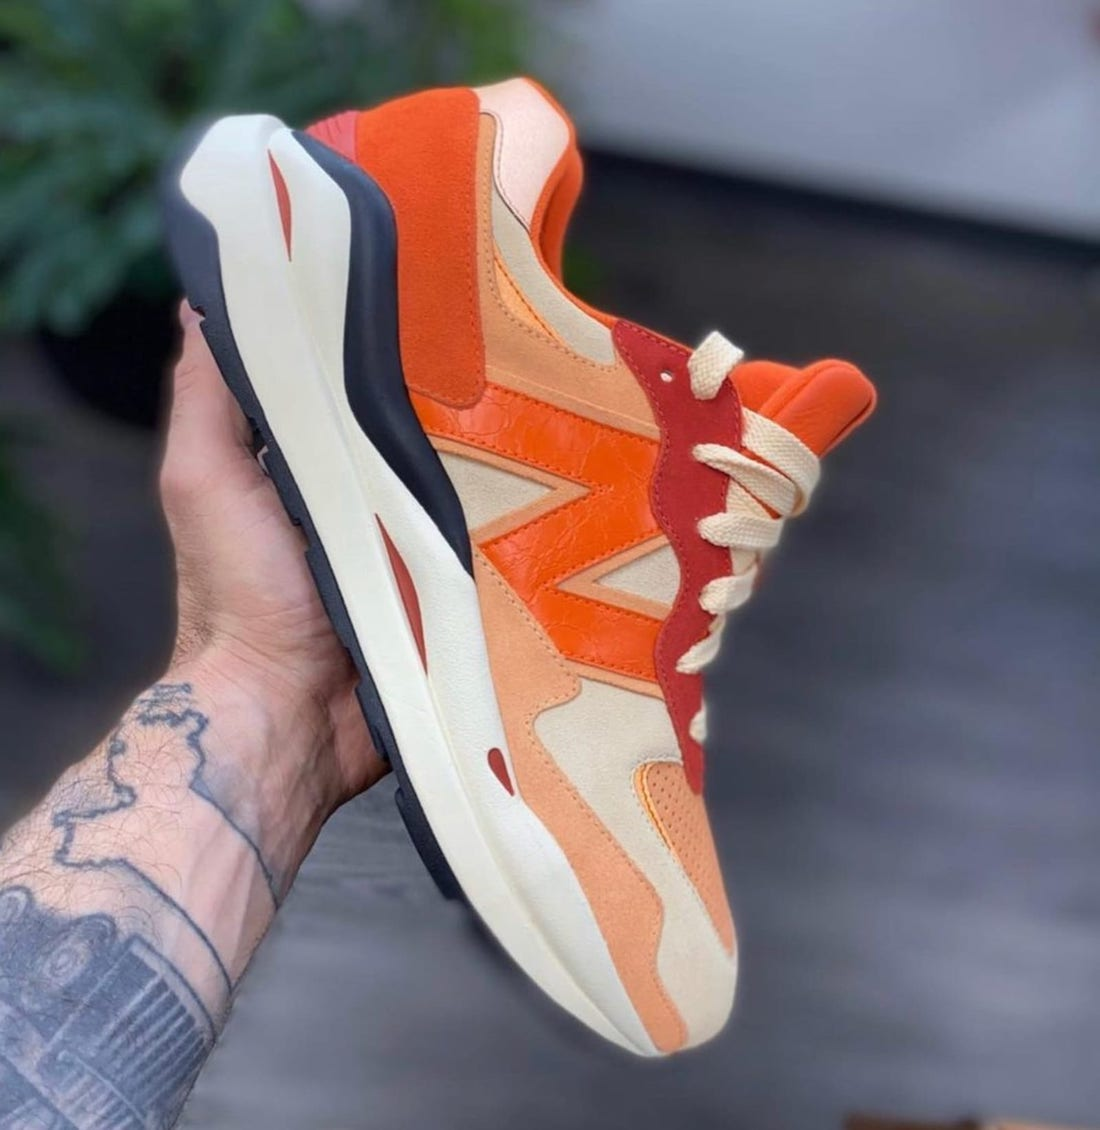 Concepts New Balance 57/40 Get Home Safe Release Date Info